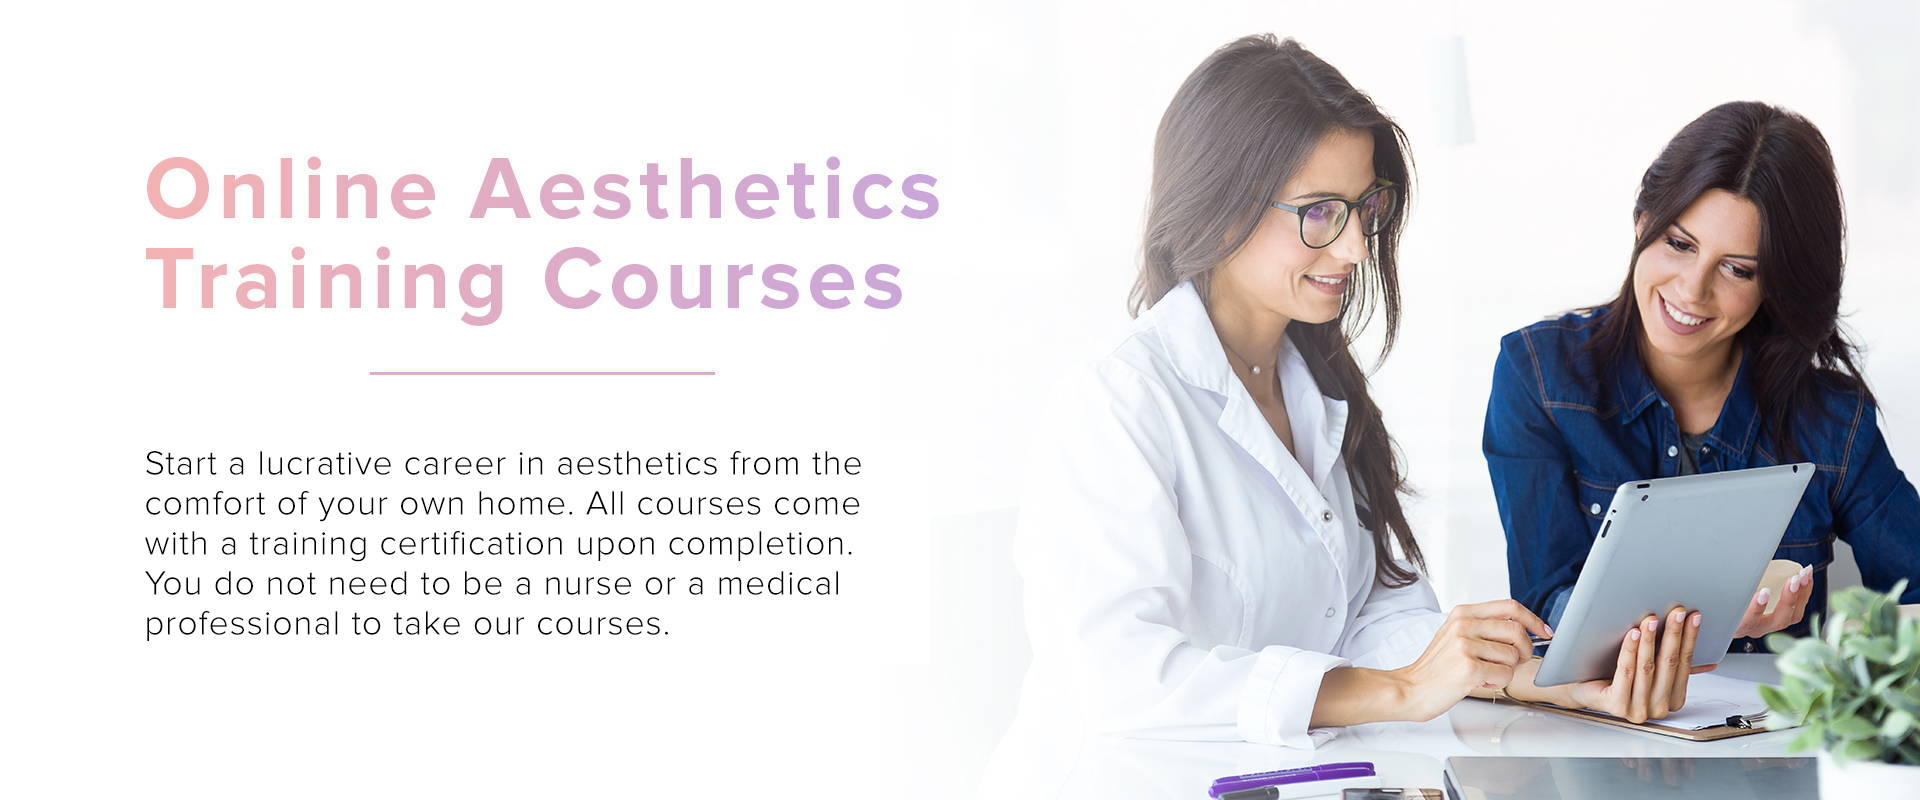 Online Aestheitcs Training Courses and Supplies